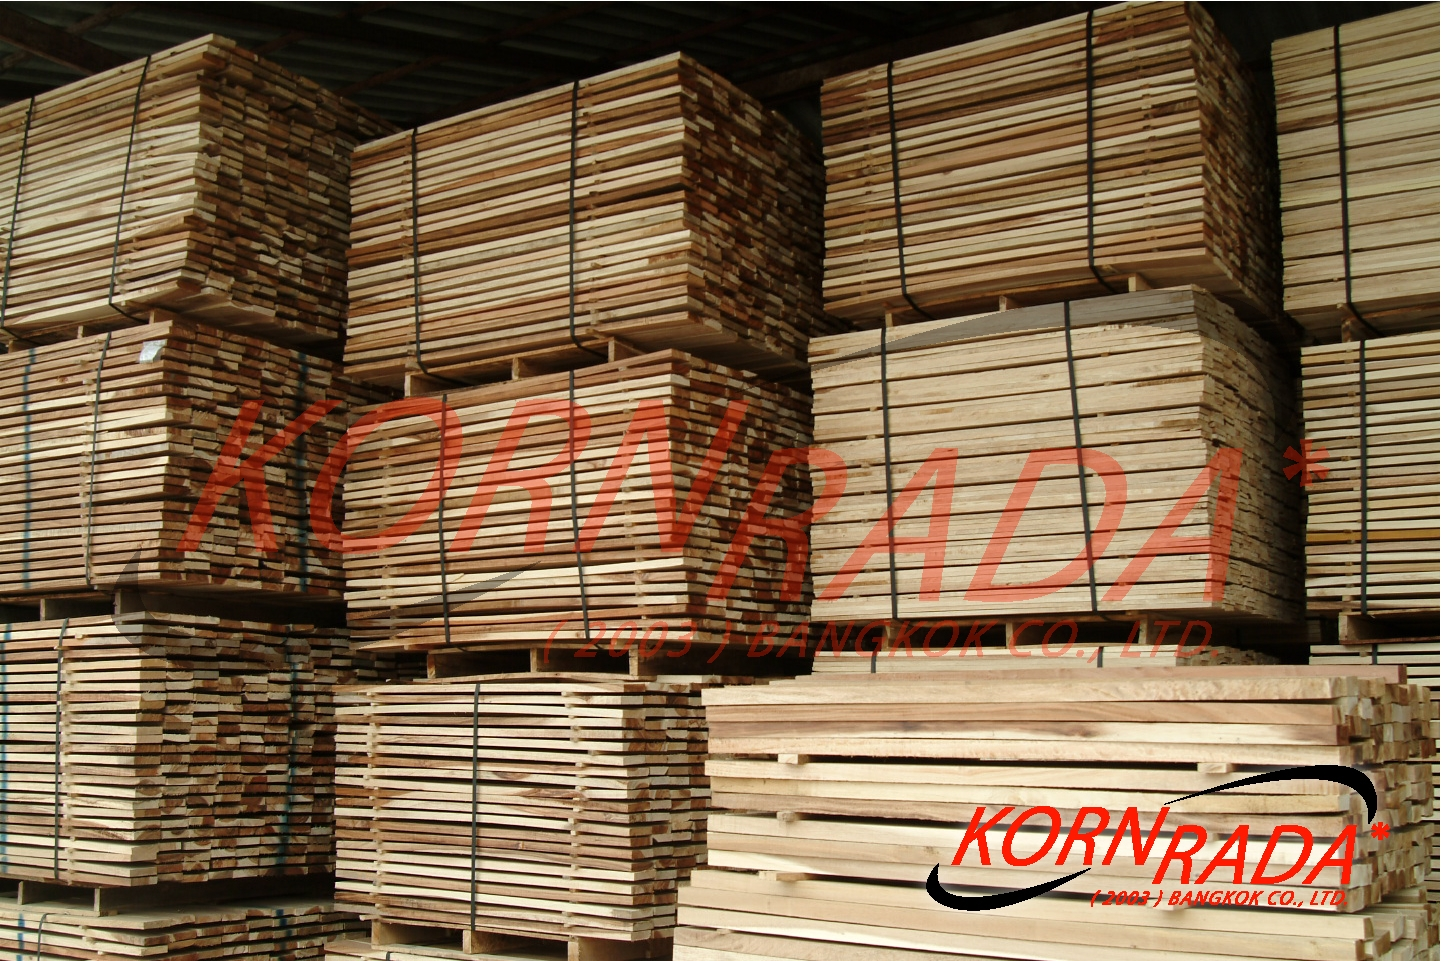 kornrada_products_1410